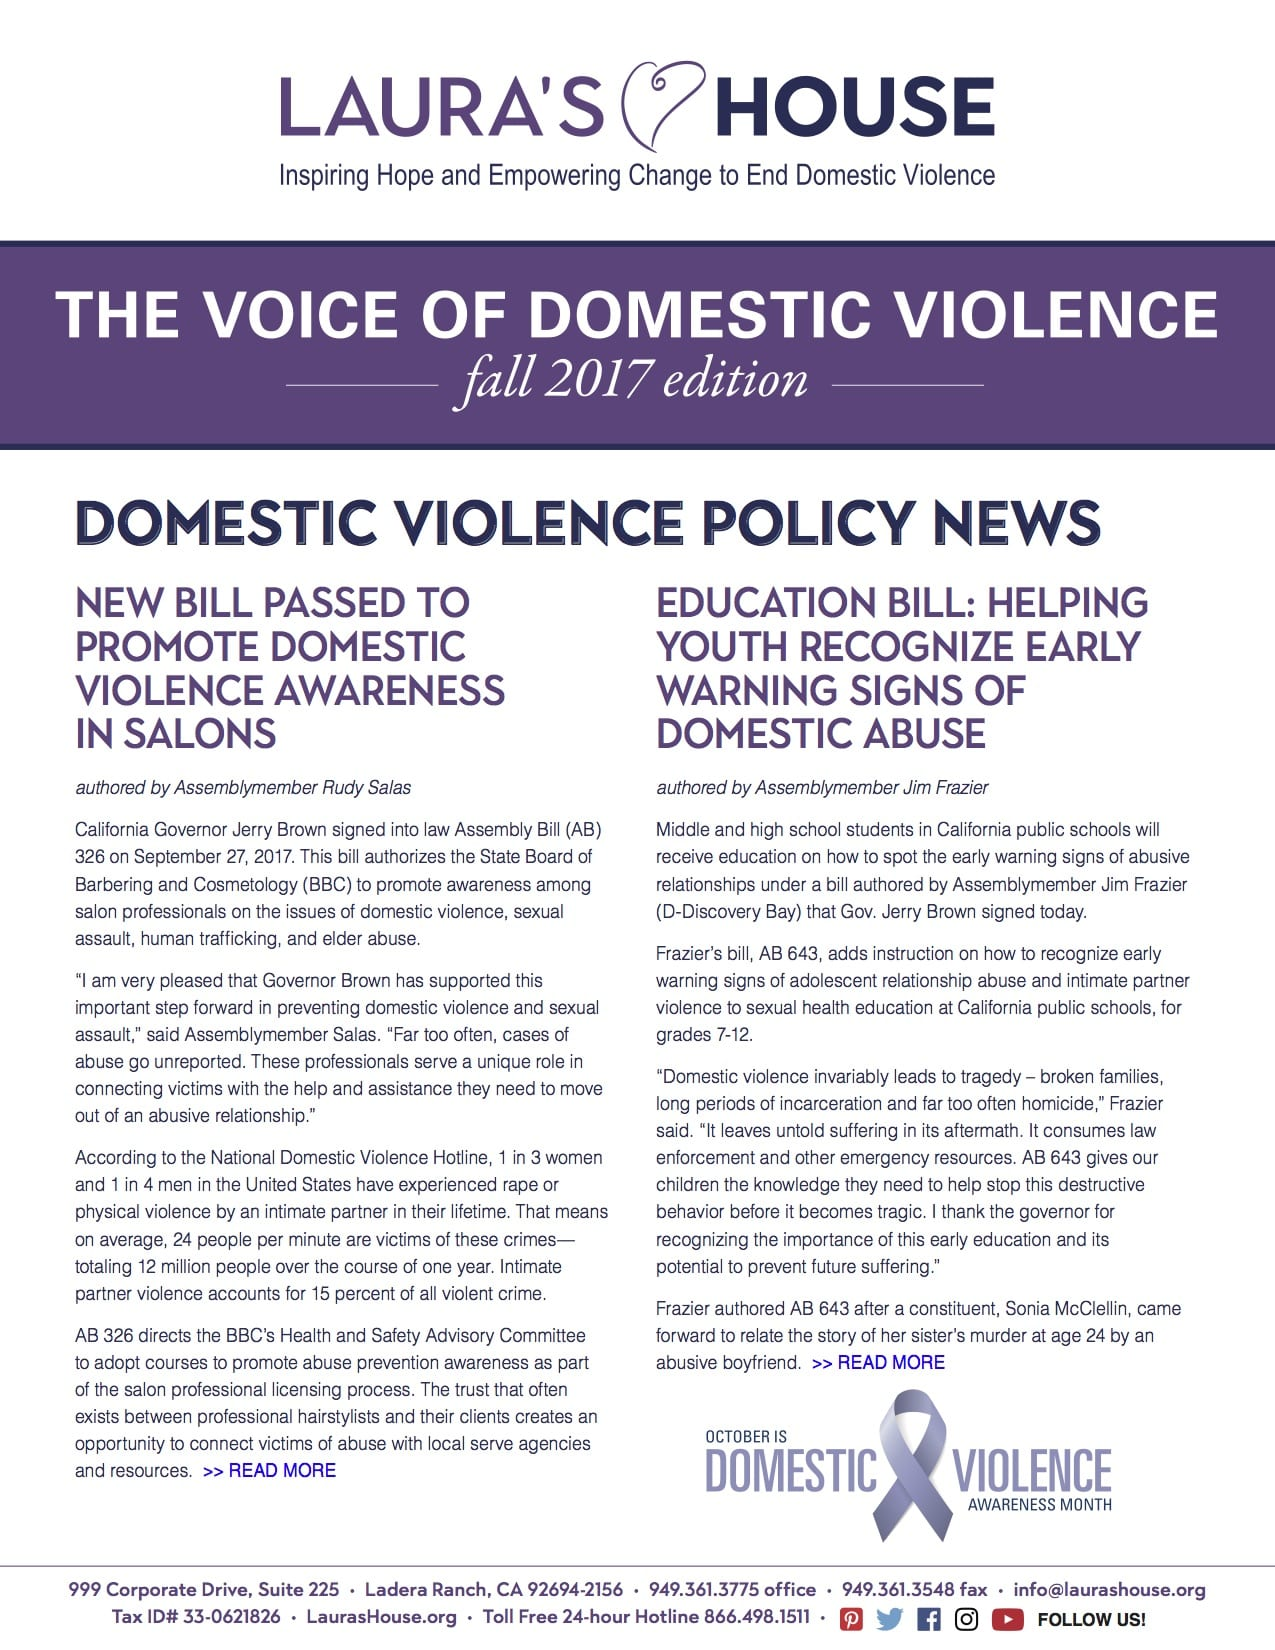 The Voice of Domestic Violence - Fall 2017 edition